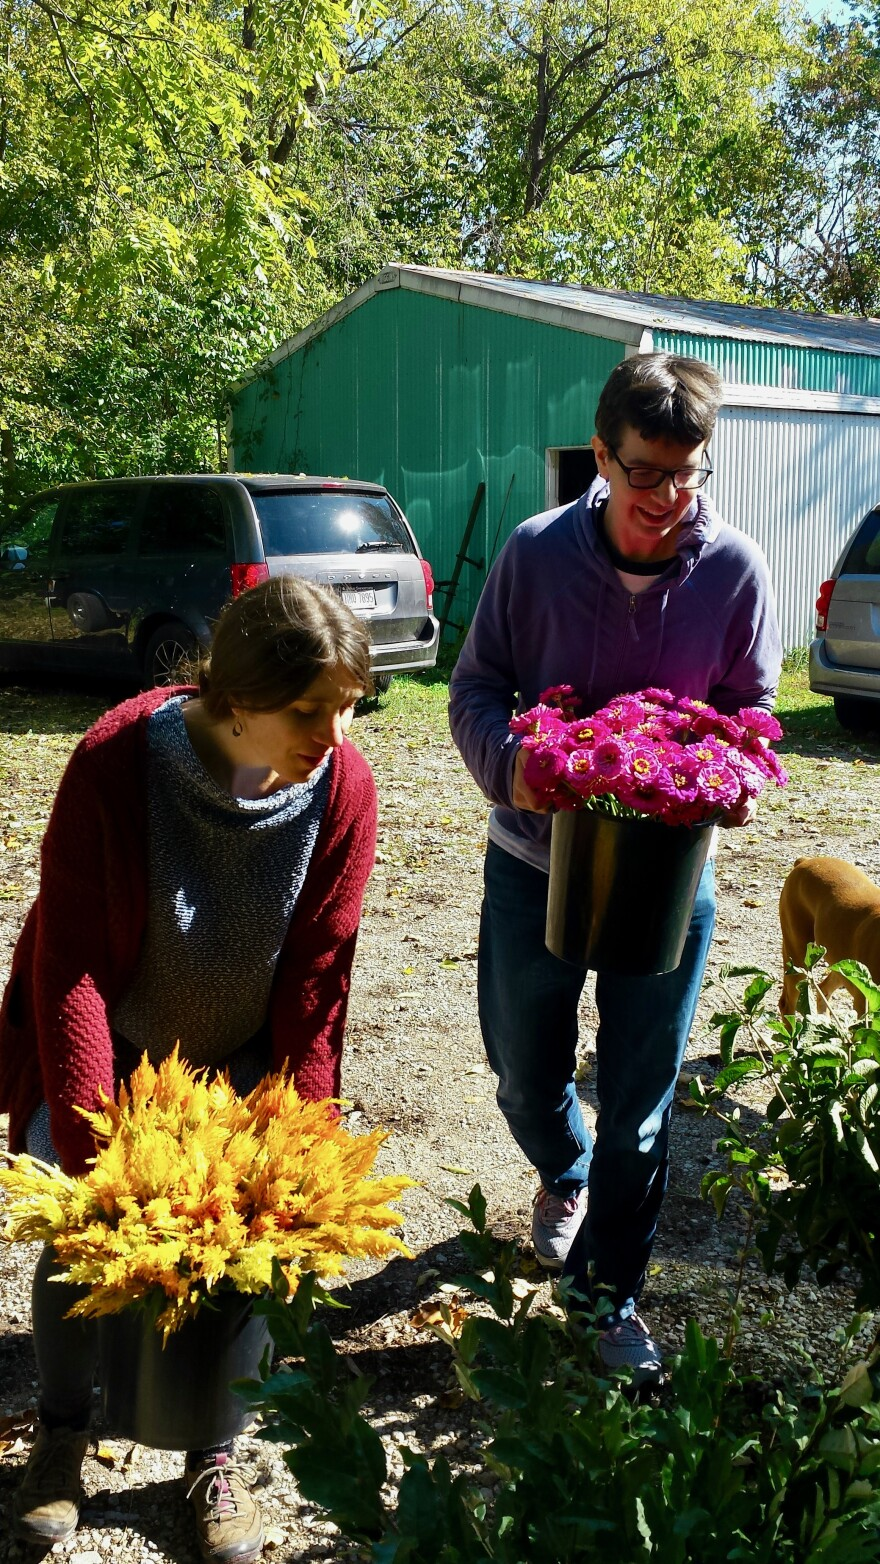 Nellie and Rosealie load flowers into the car